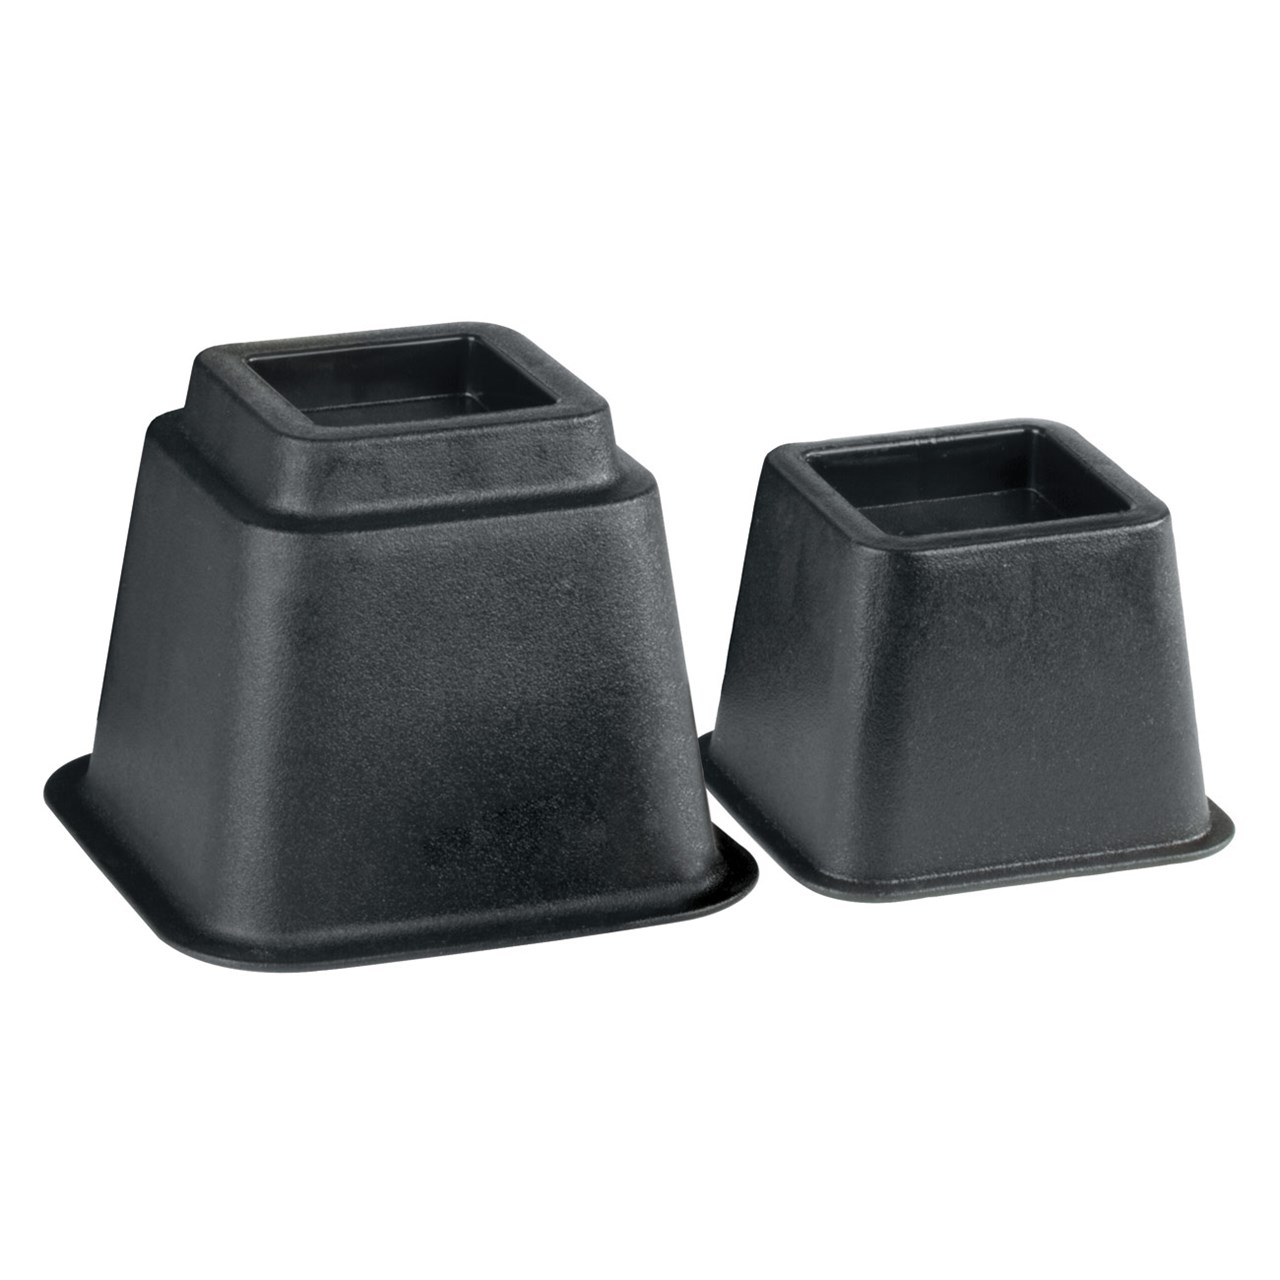 Bed And Chair Risers One Pair 4 Inch